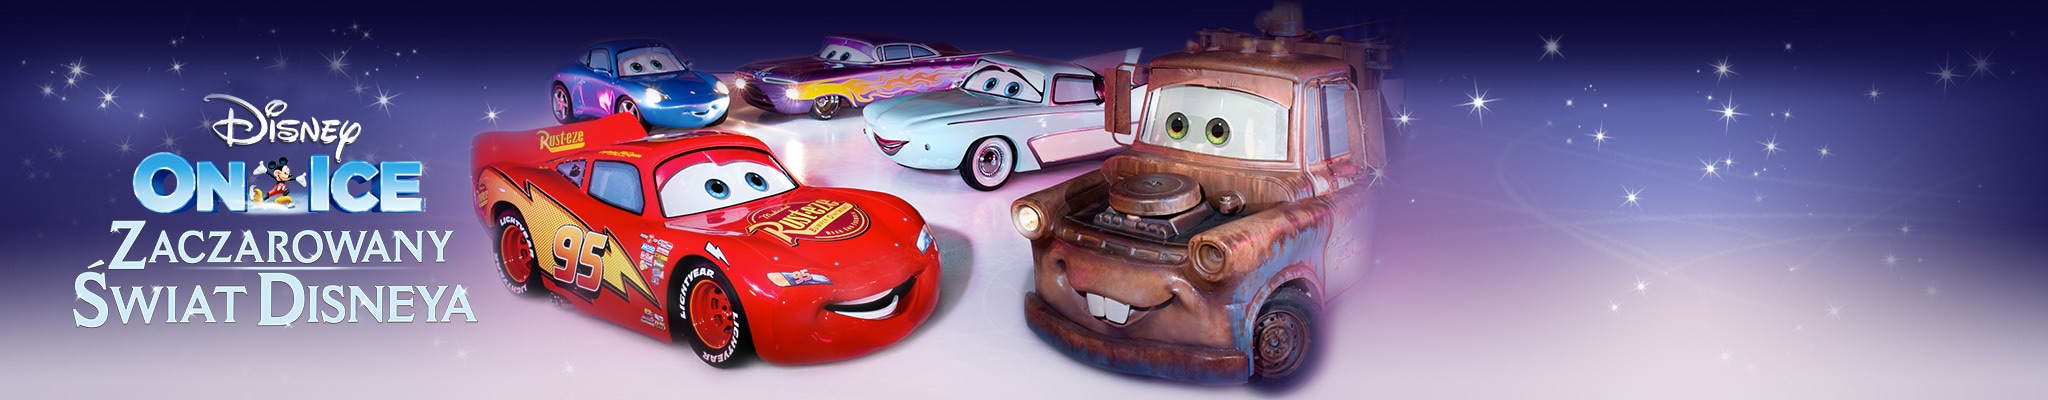 FW Short Hero - Disney on Ice - Worlds of Enchantment - Cars